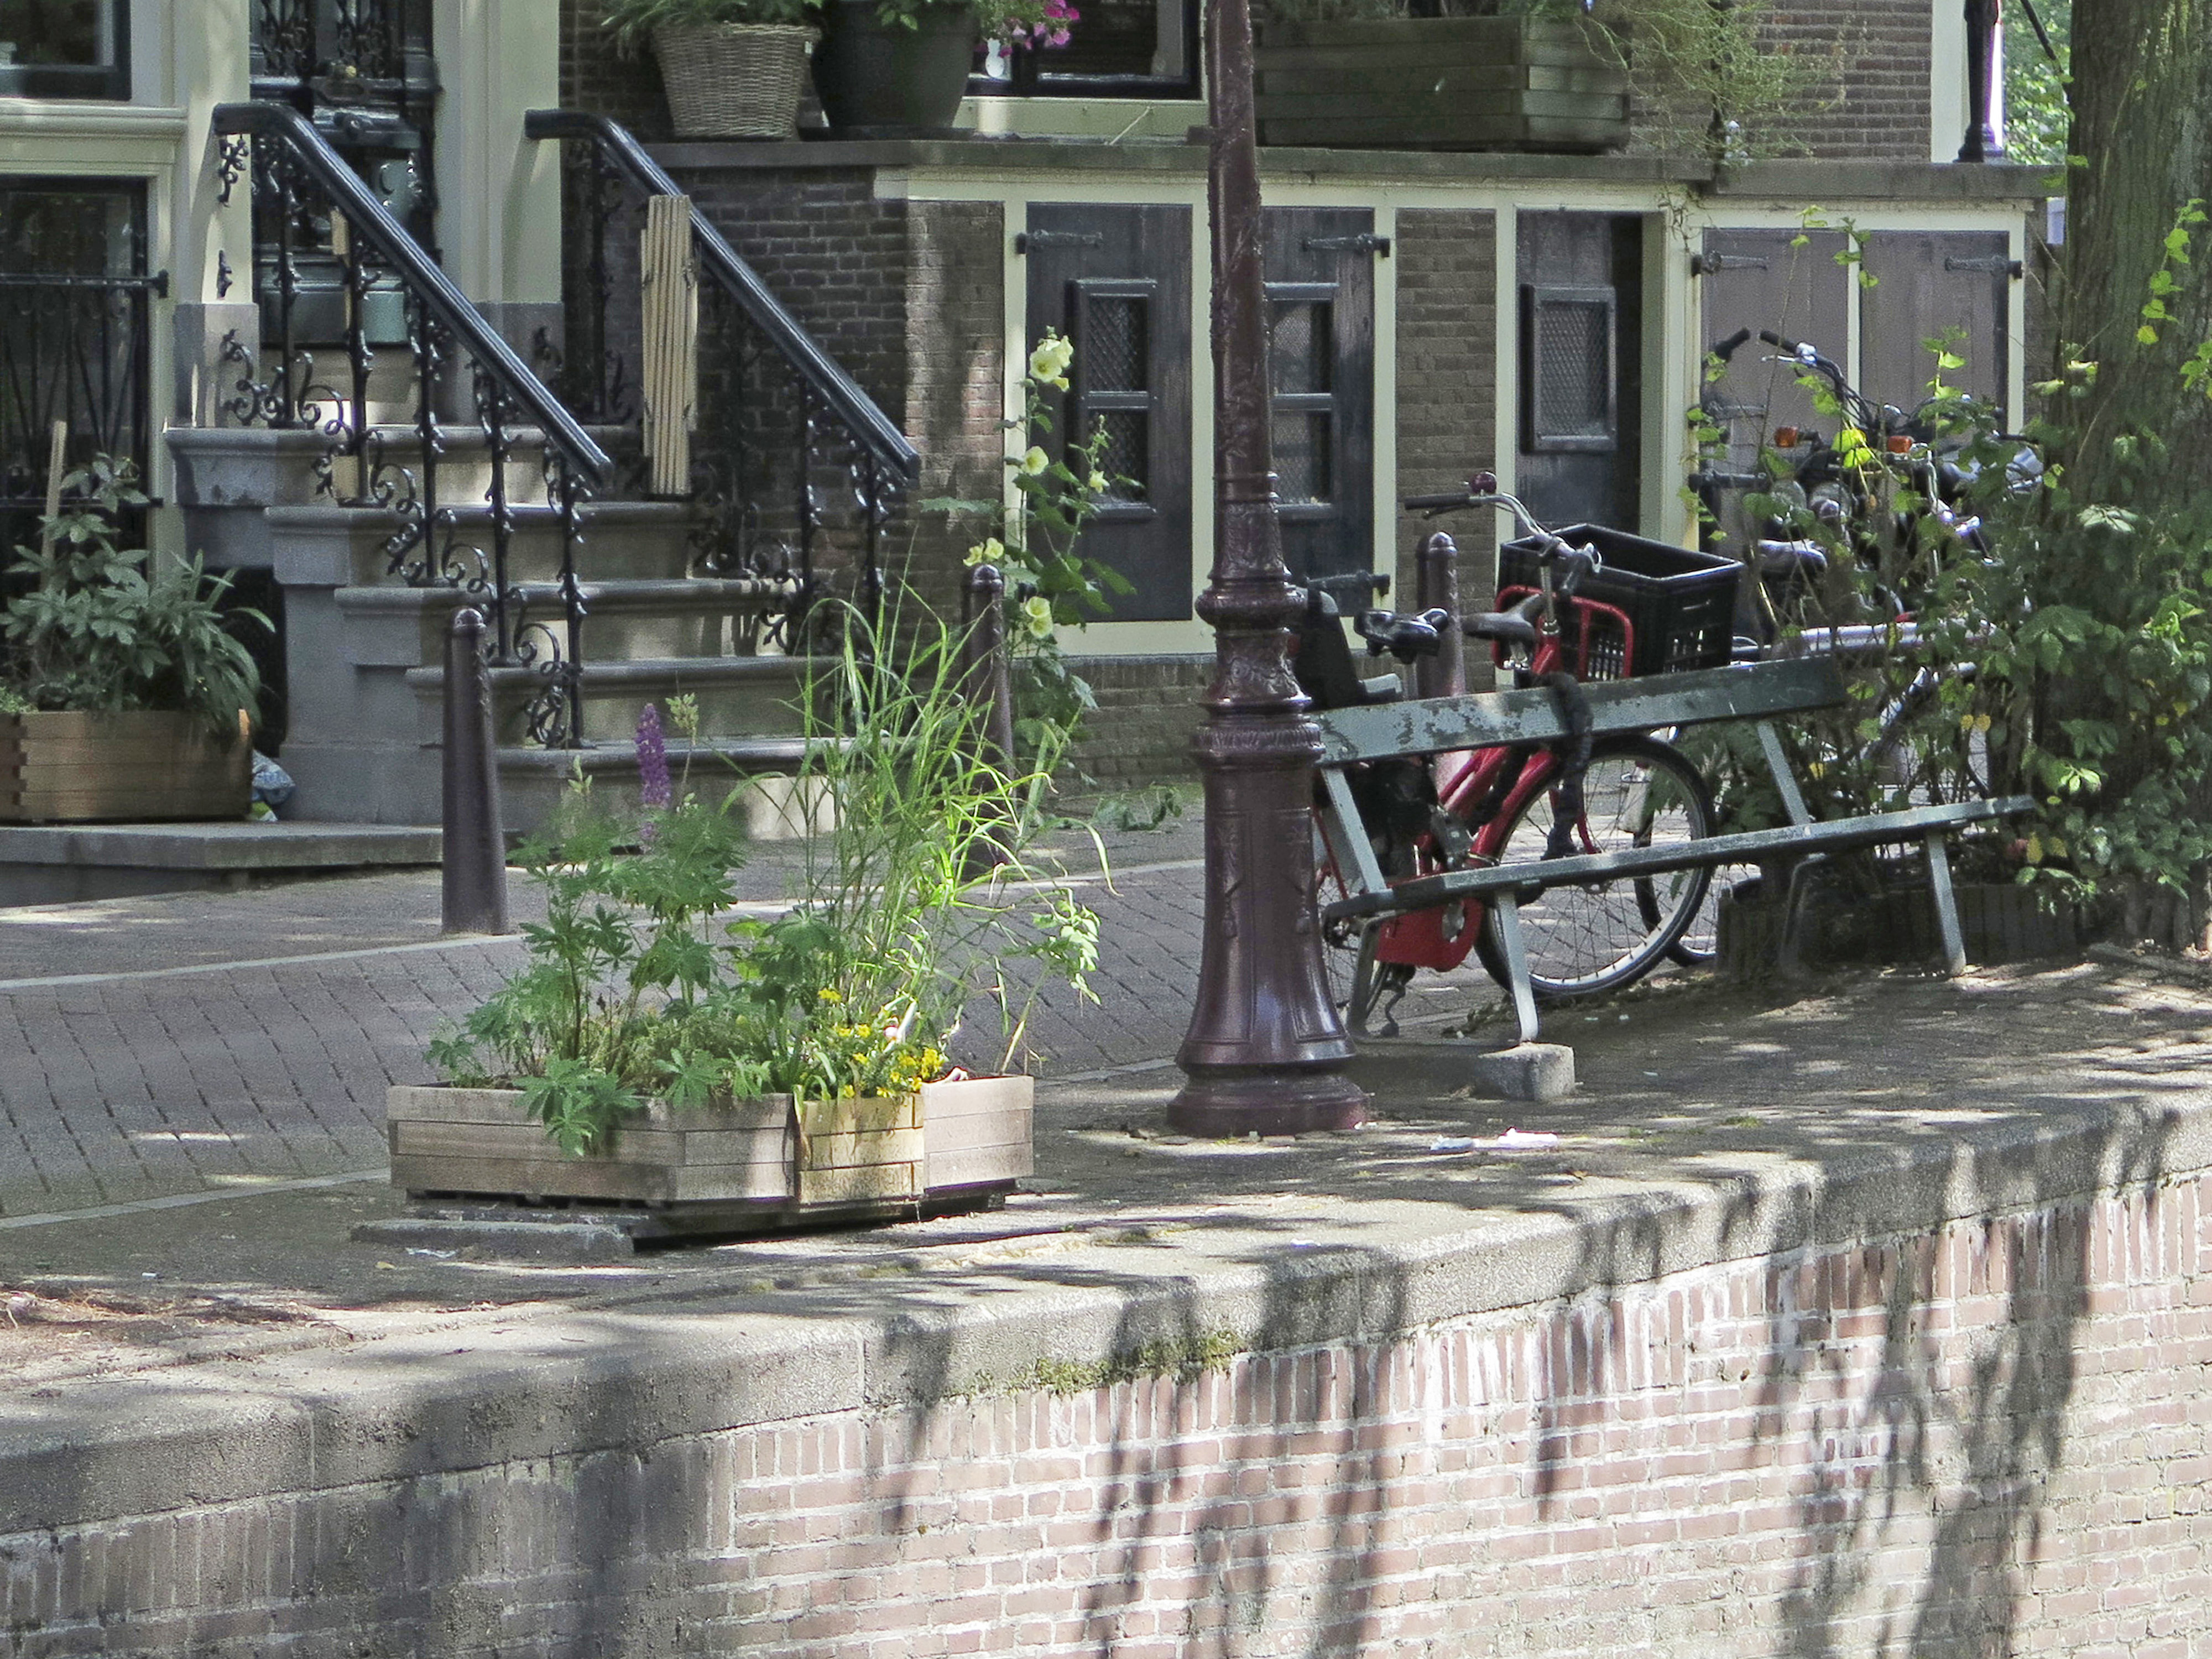 A large plant pot, at left, sits in the spot where a bench similar to the one at right, once sat, in Amsterdam on  July 1, 2014.